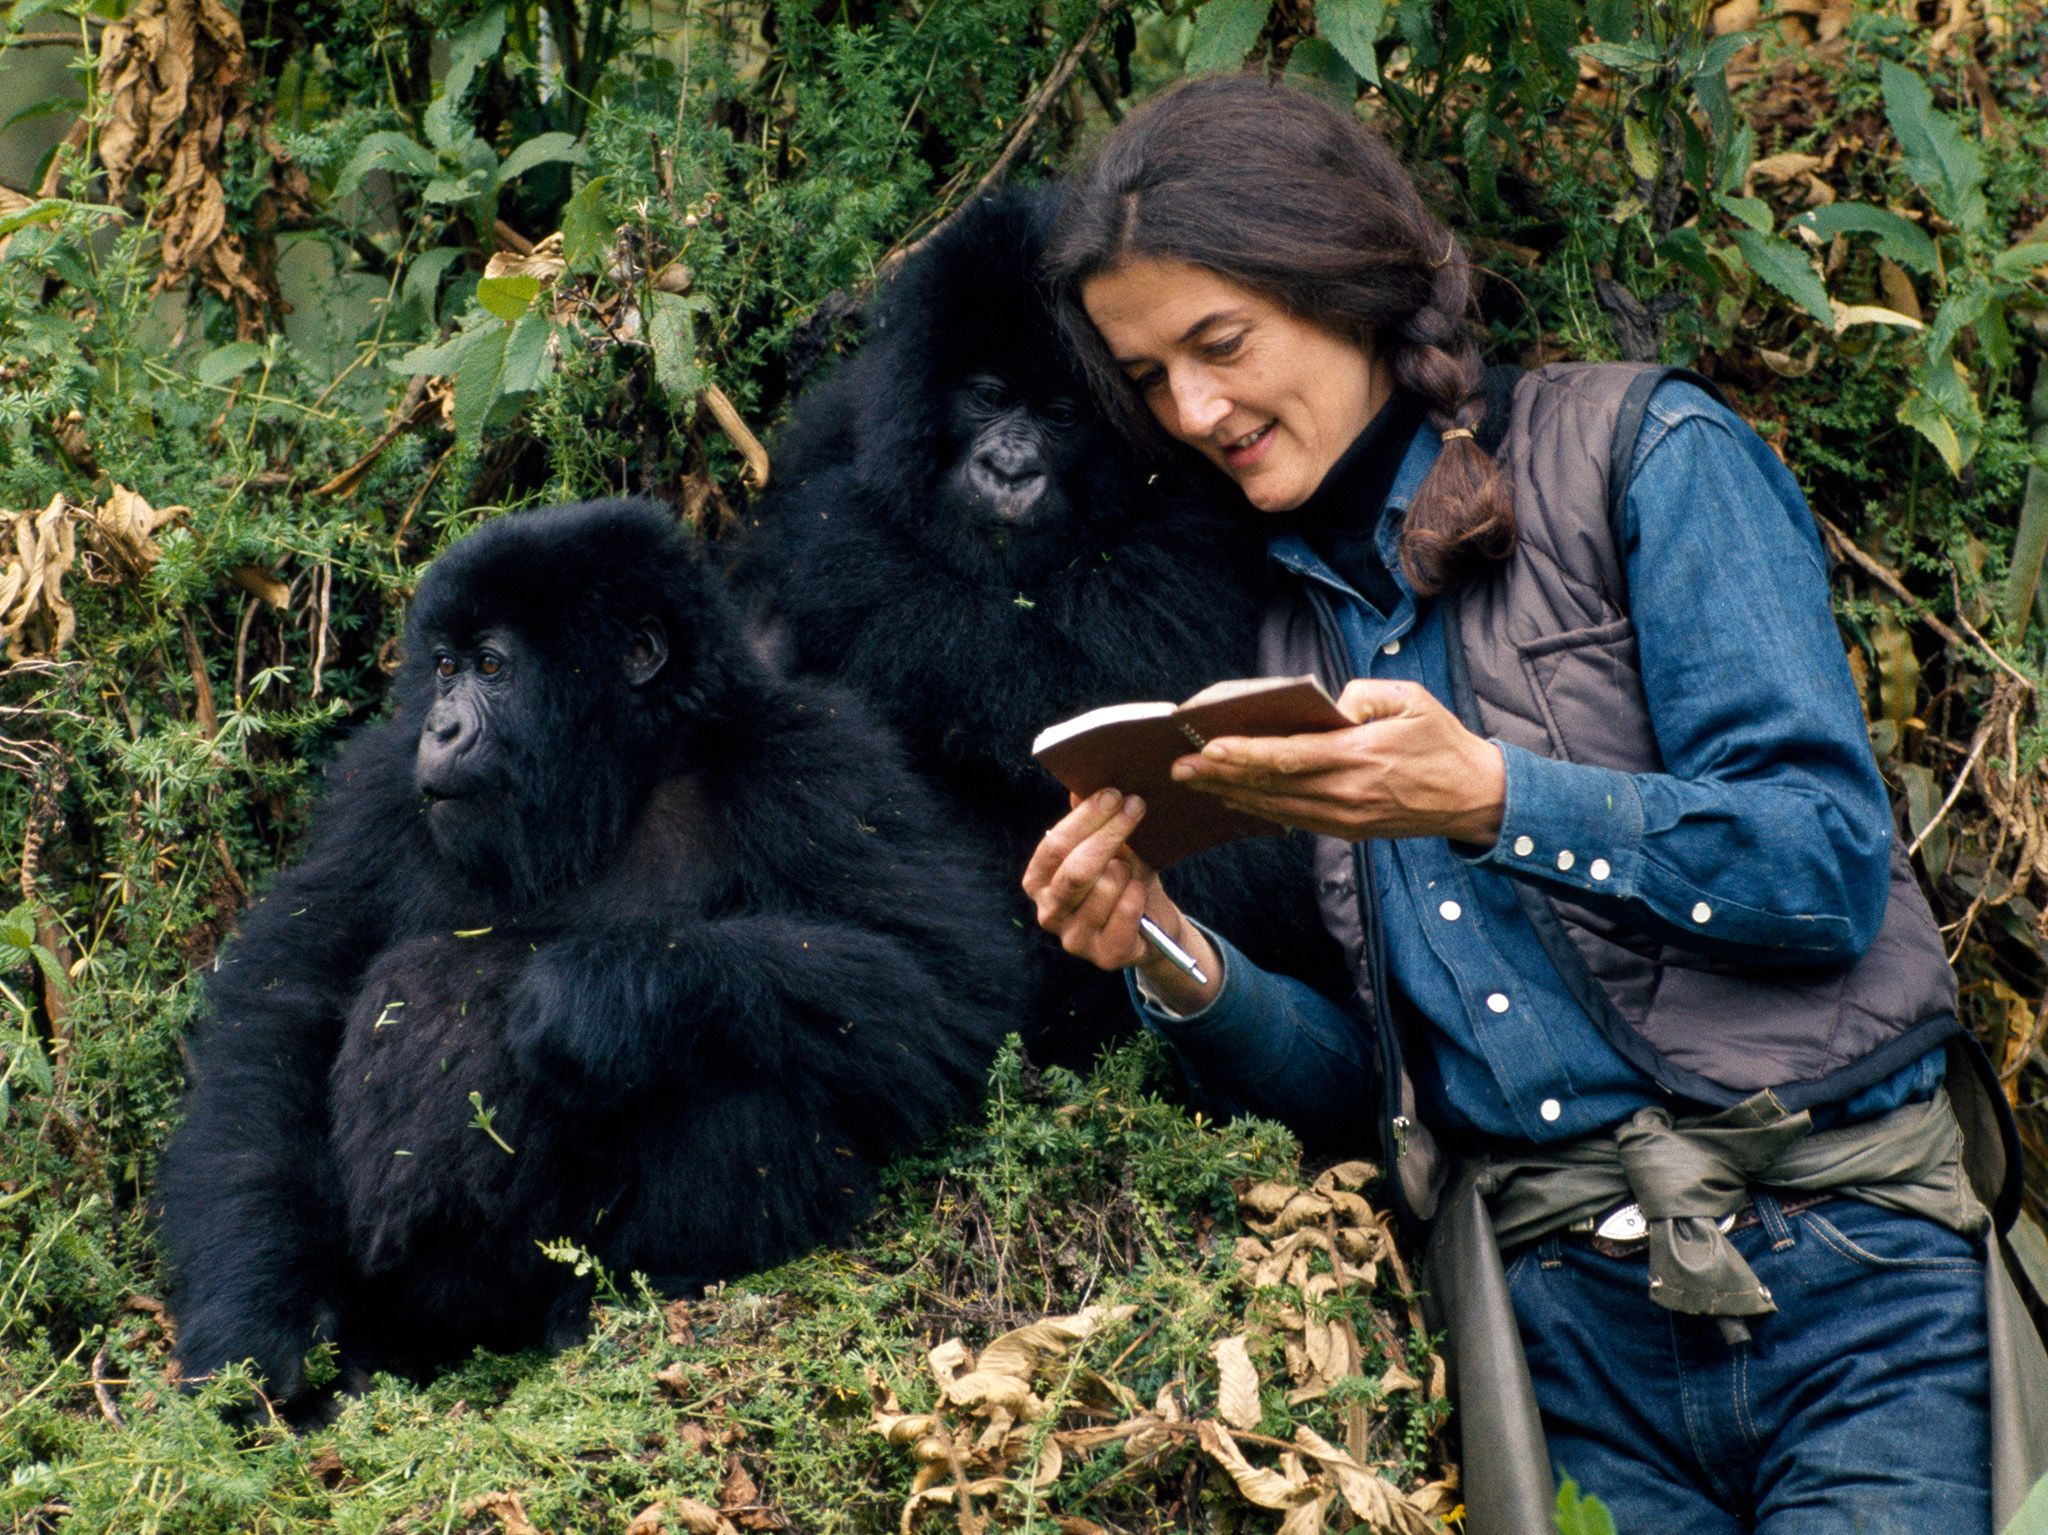 Dian Fossey in the wild with Mountain Gorillas. This image is from Dian Fossey: Secrets in the Mist. [Photo of the day - December 2017]